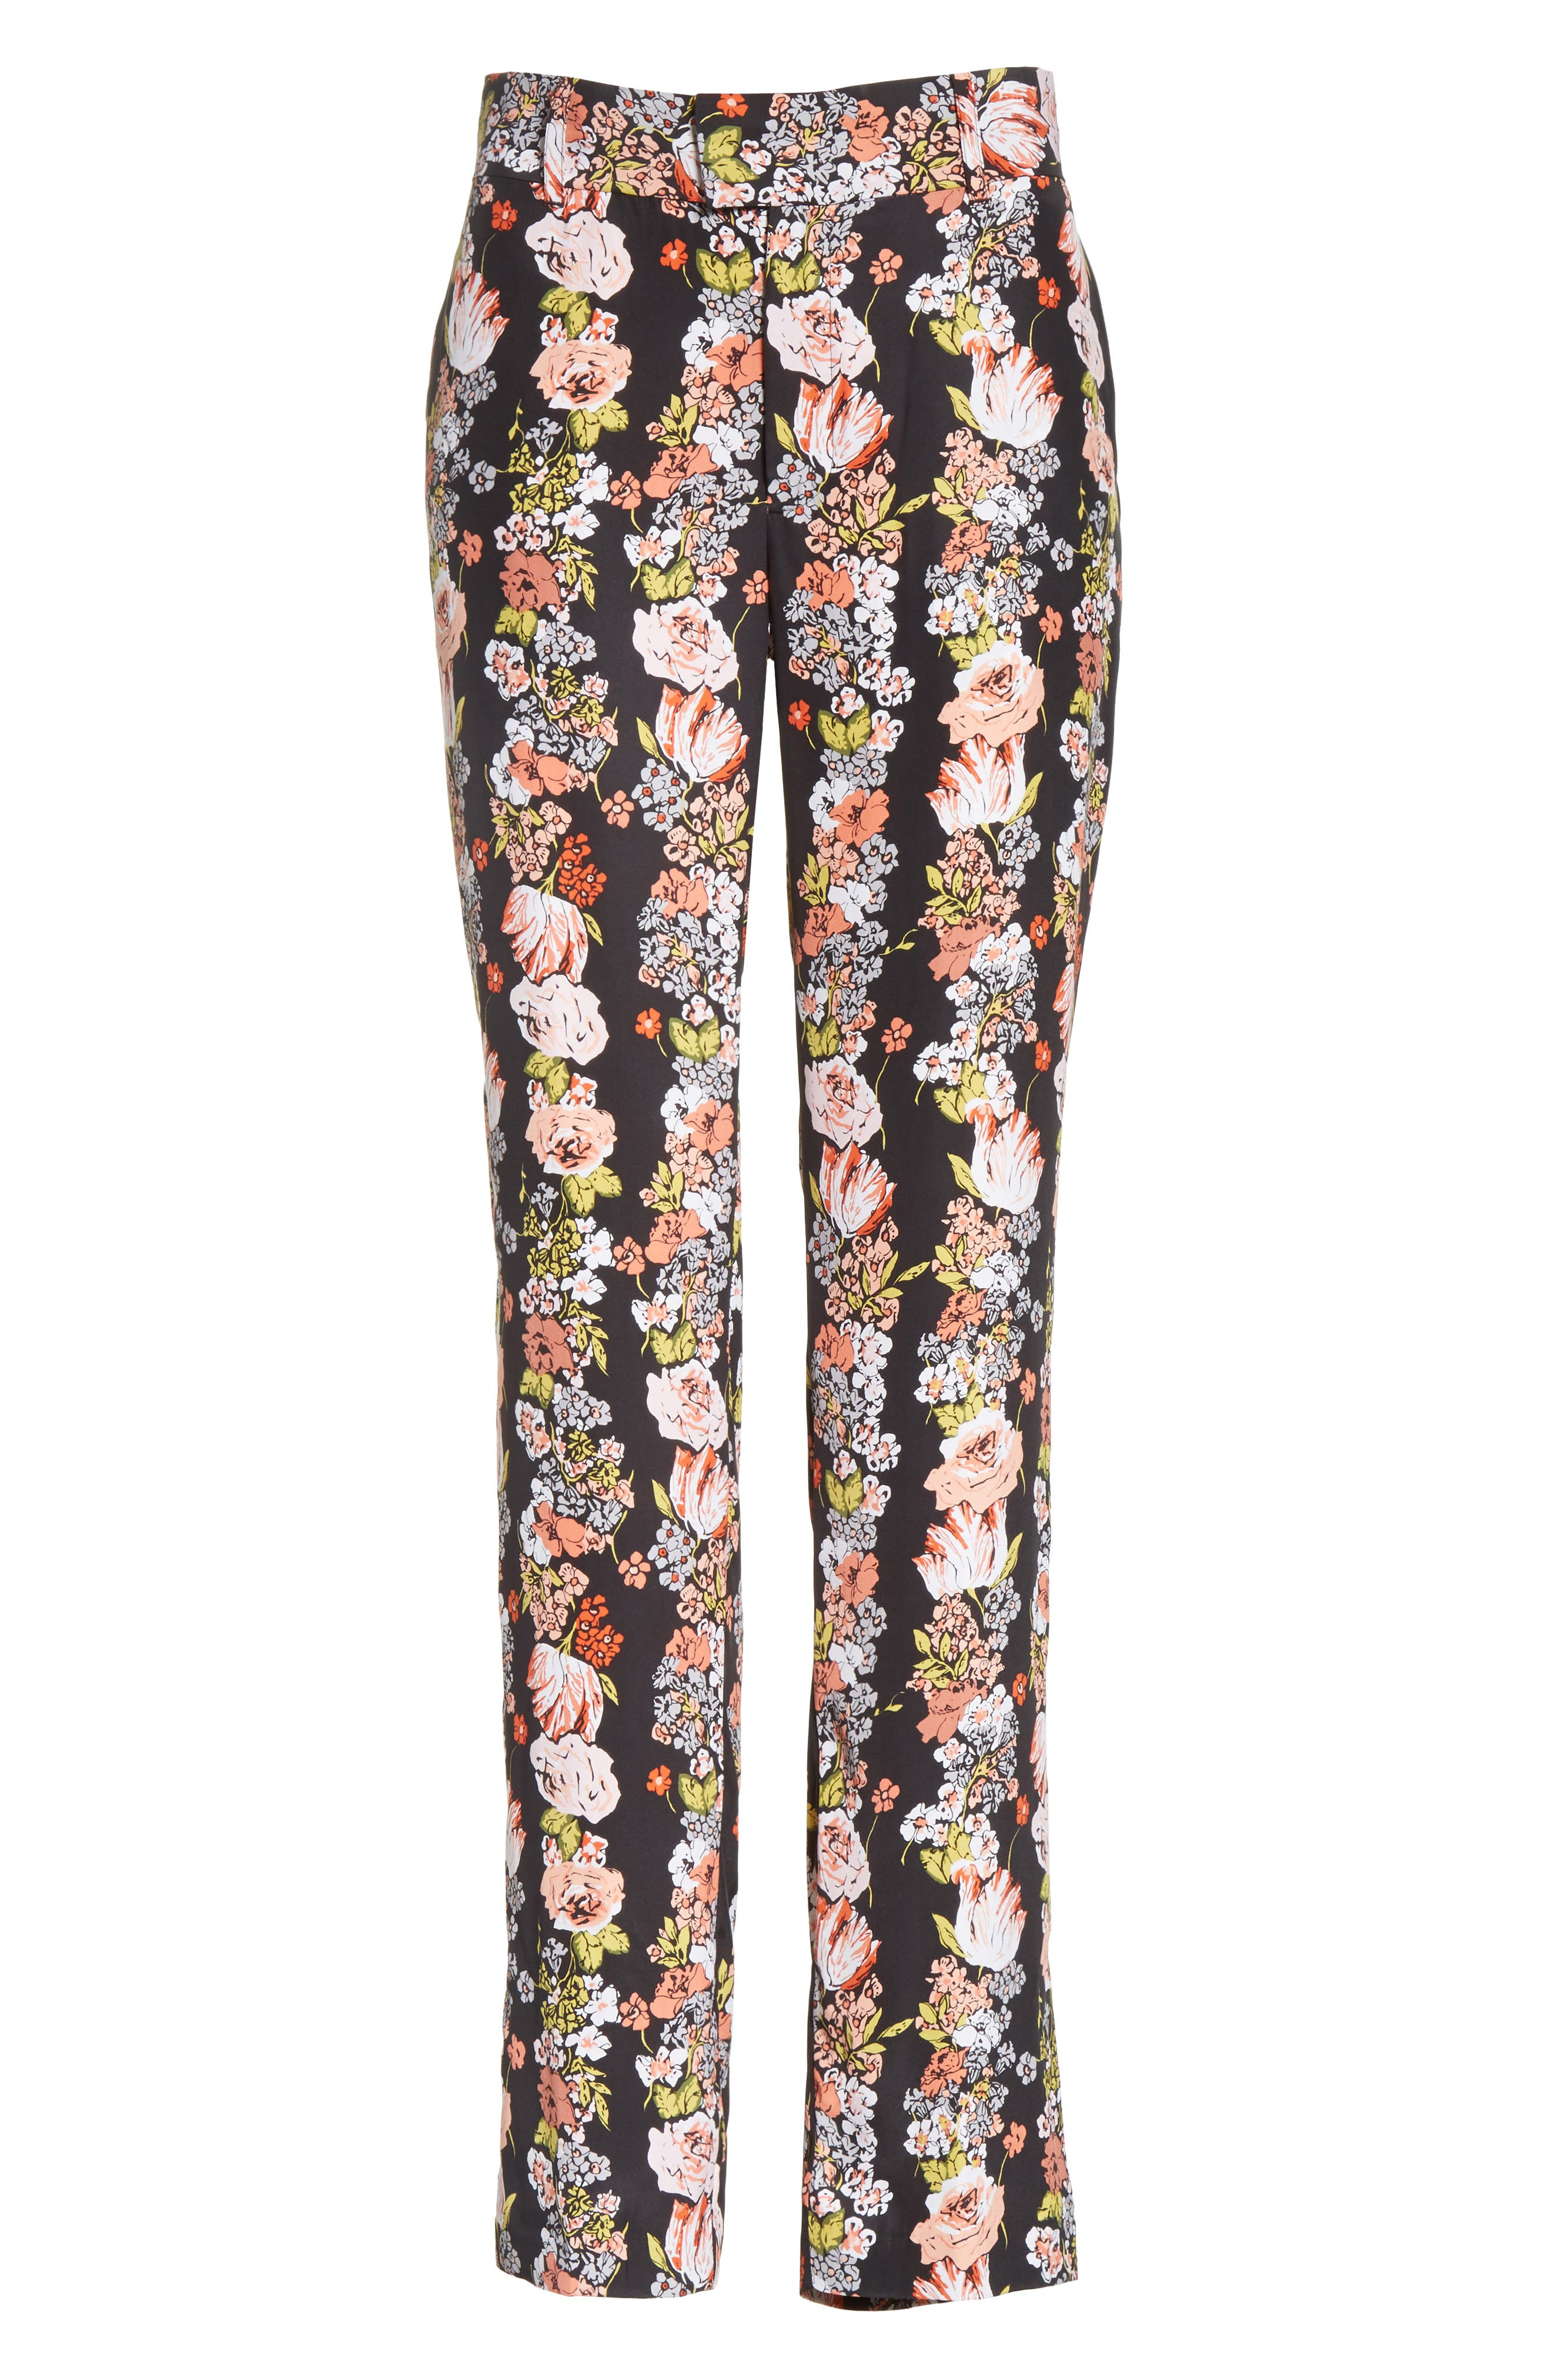 Florence Floral Silk Trousers,                             Alternate thumbnail 6, color,                             True Black Multi